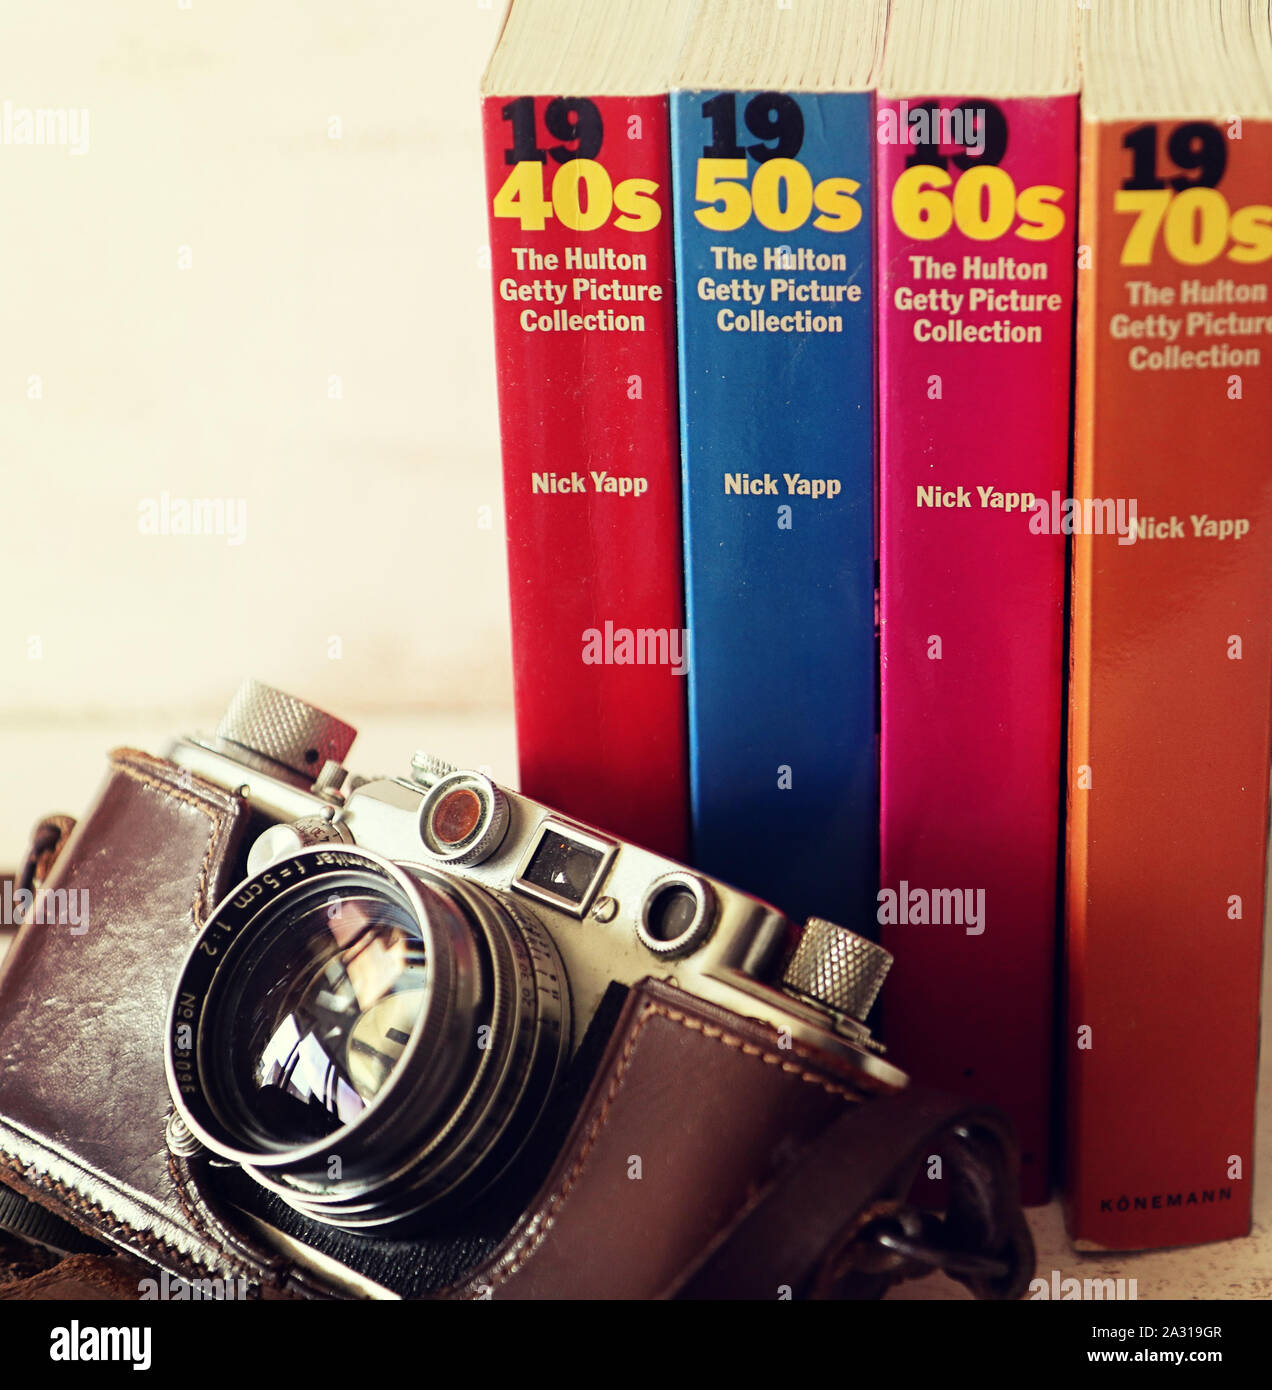 GARCHING, GERMANY - Vintage Leica camera and books with the Hulton Getty picture collection of analog images significative of the period Stock Photo